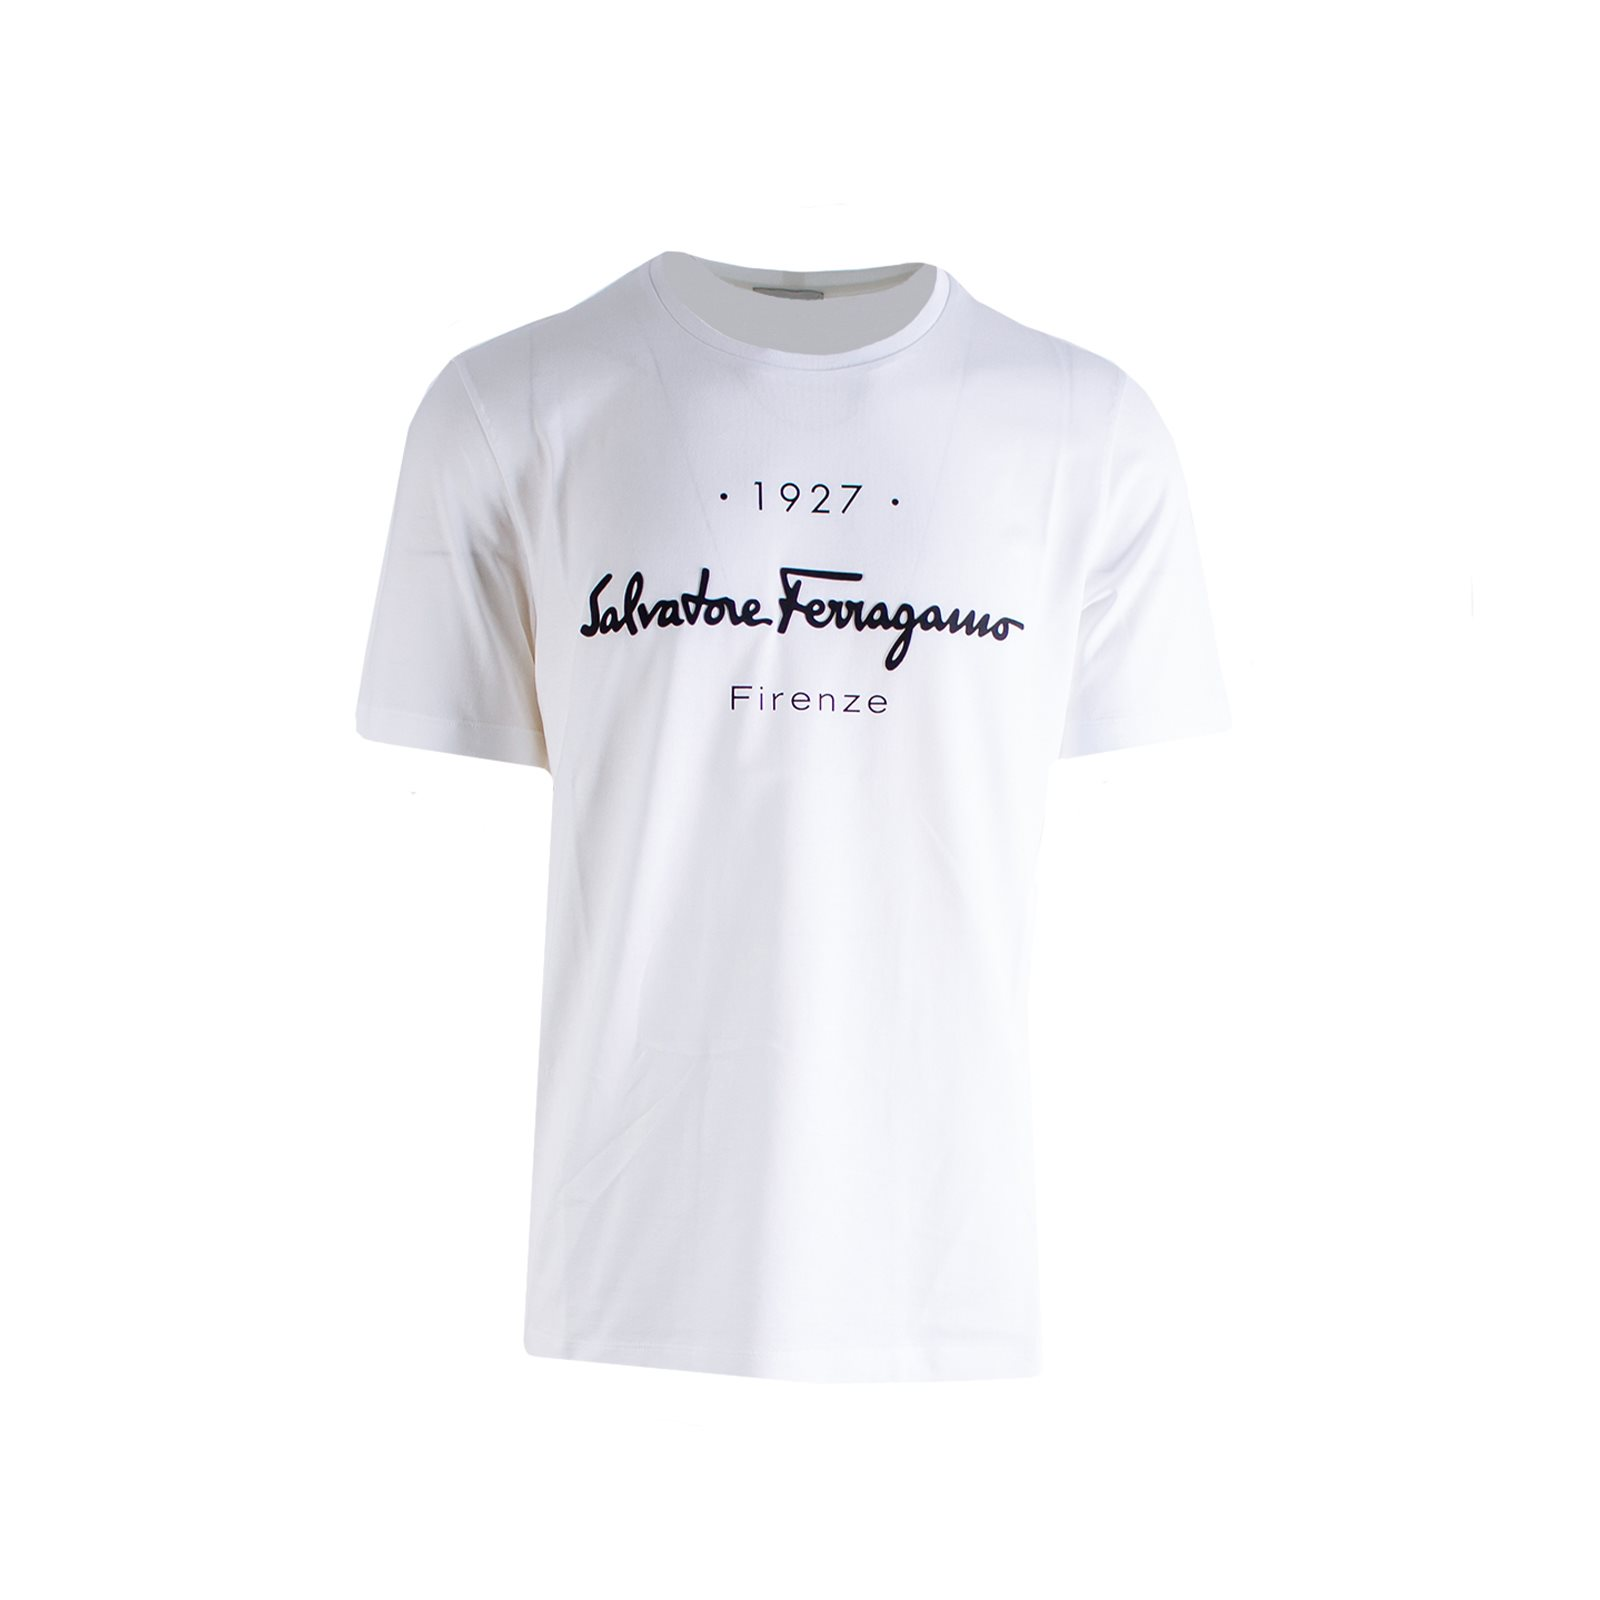 Salvatore Ferregamo T-shirt